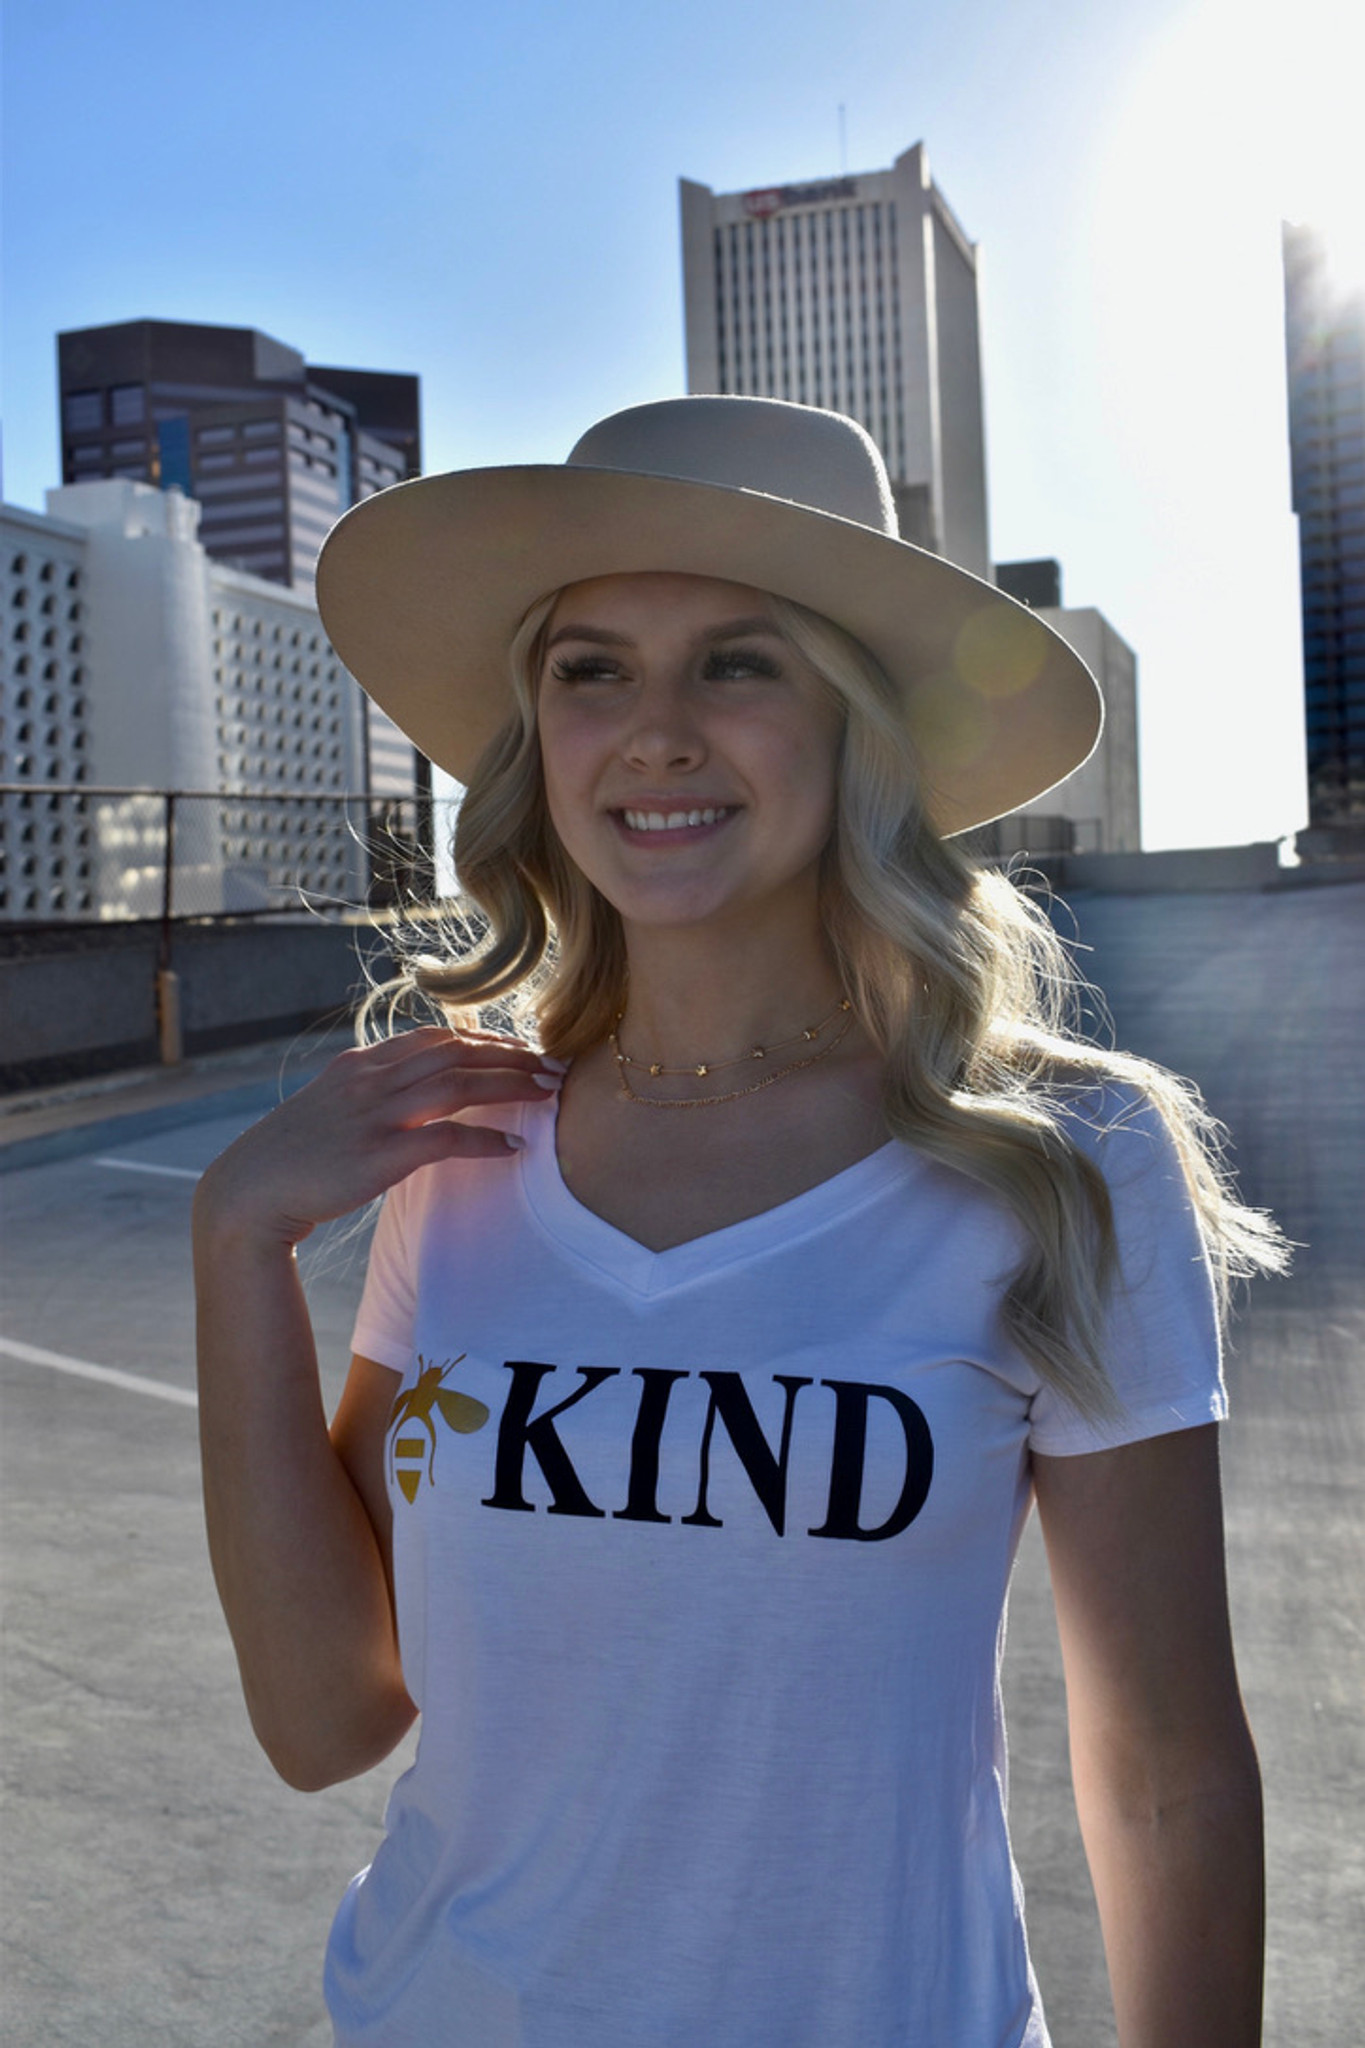 BEE KIND S/S  V-NECK TEE with a 3 BEE'S GRAPHIC IN GOLD FOIL on BACK (White)